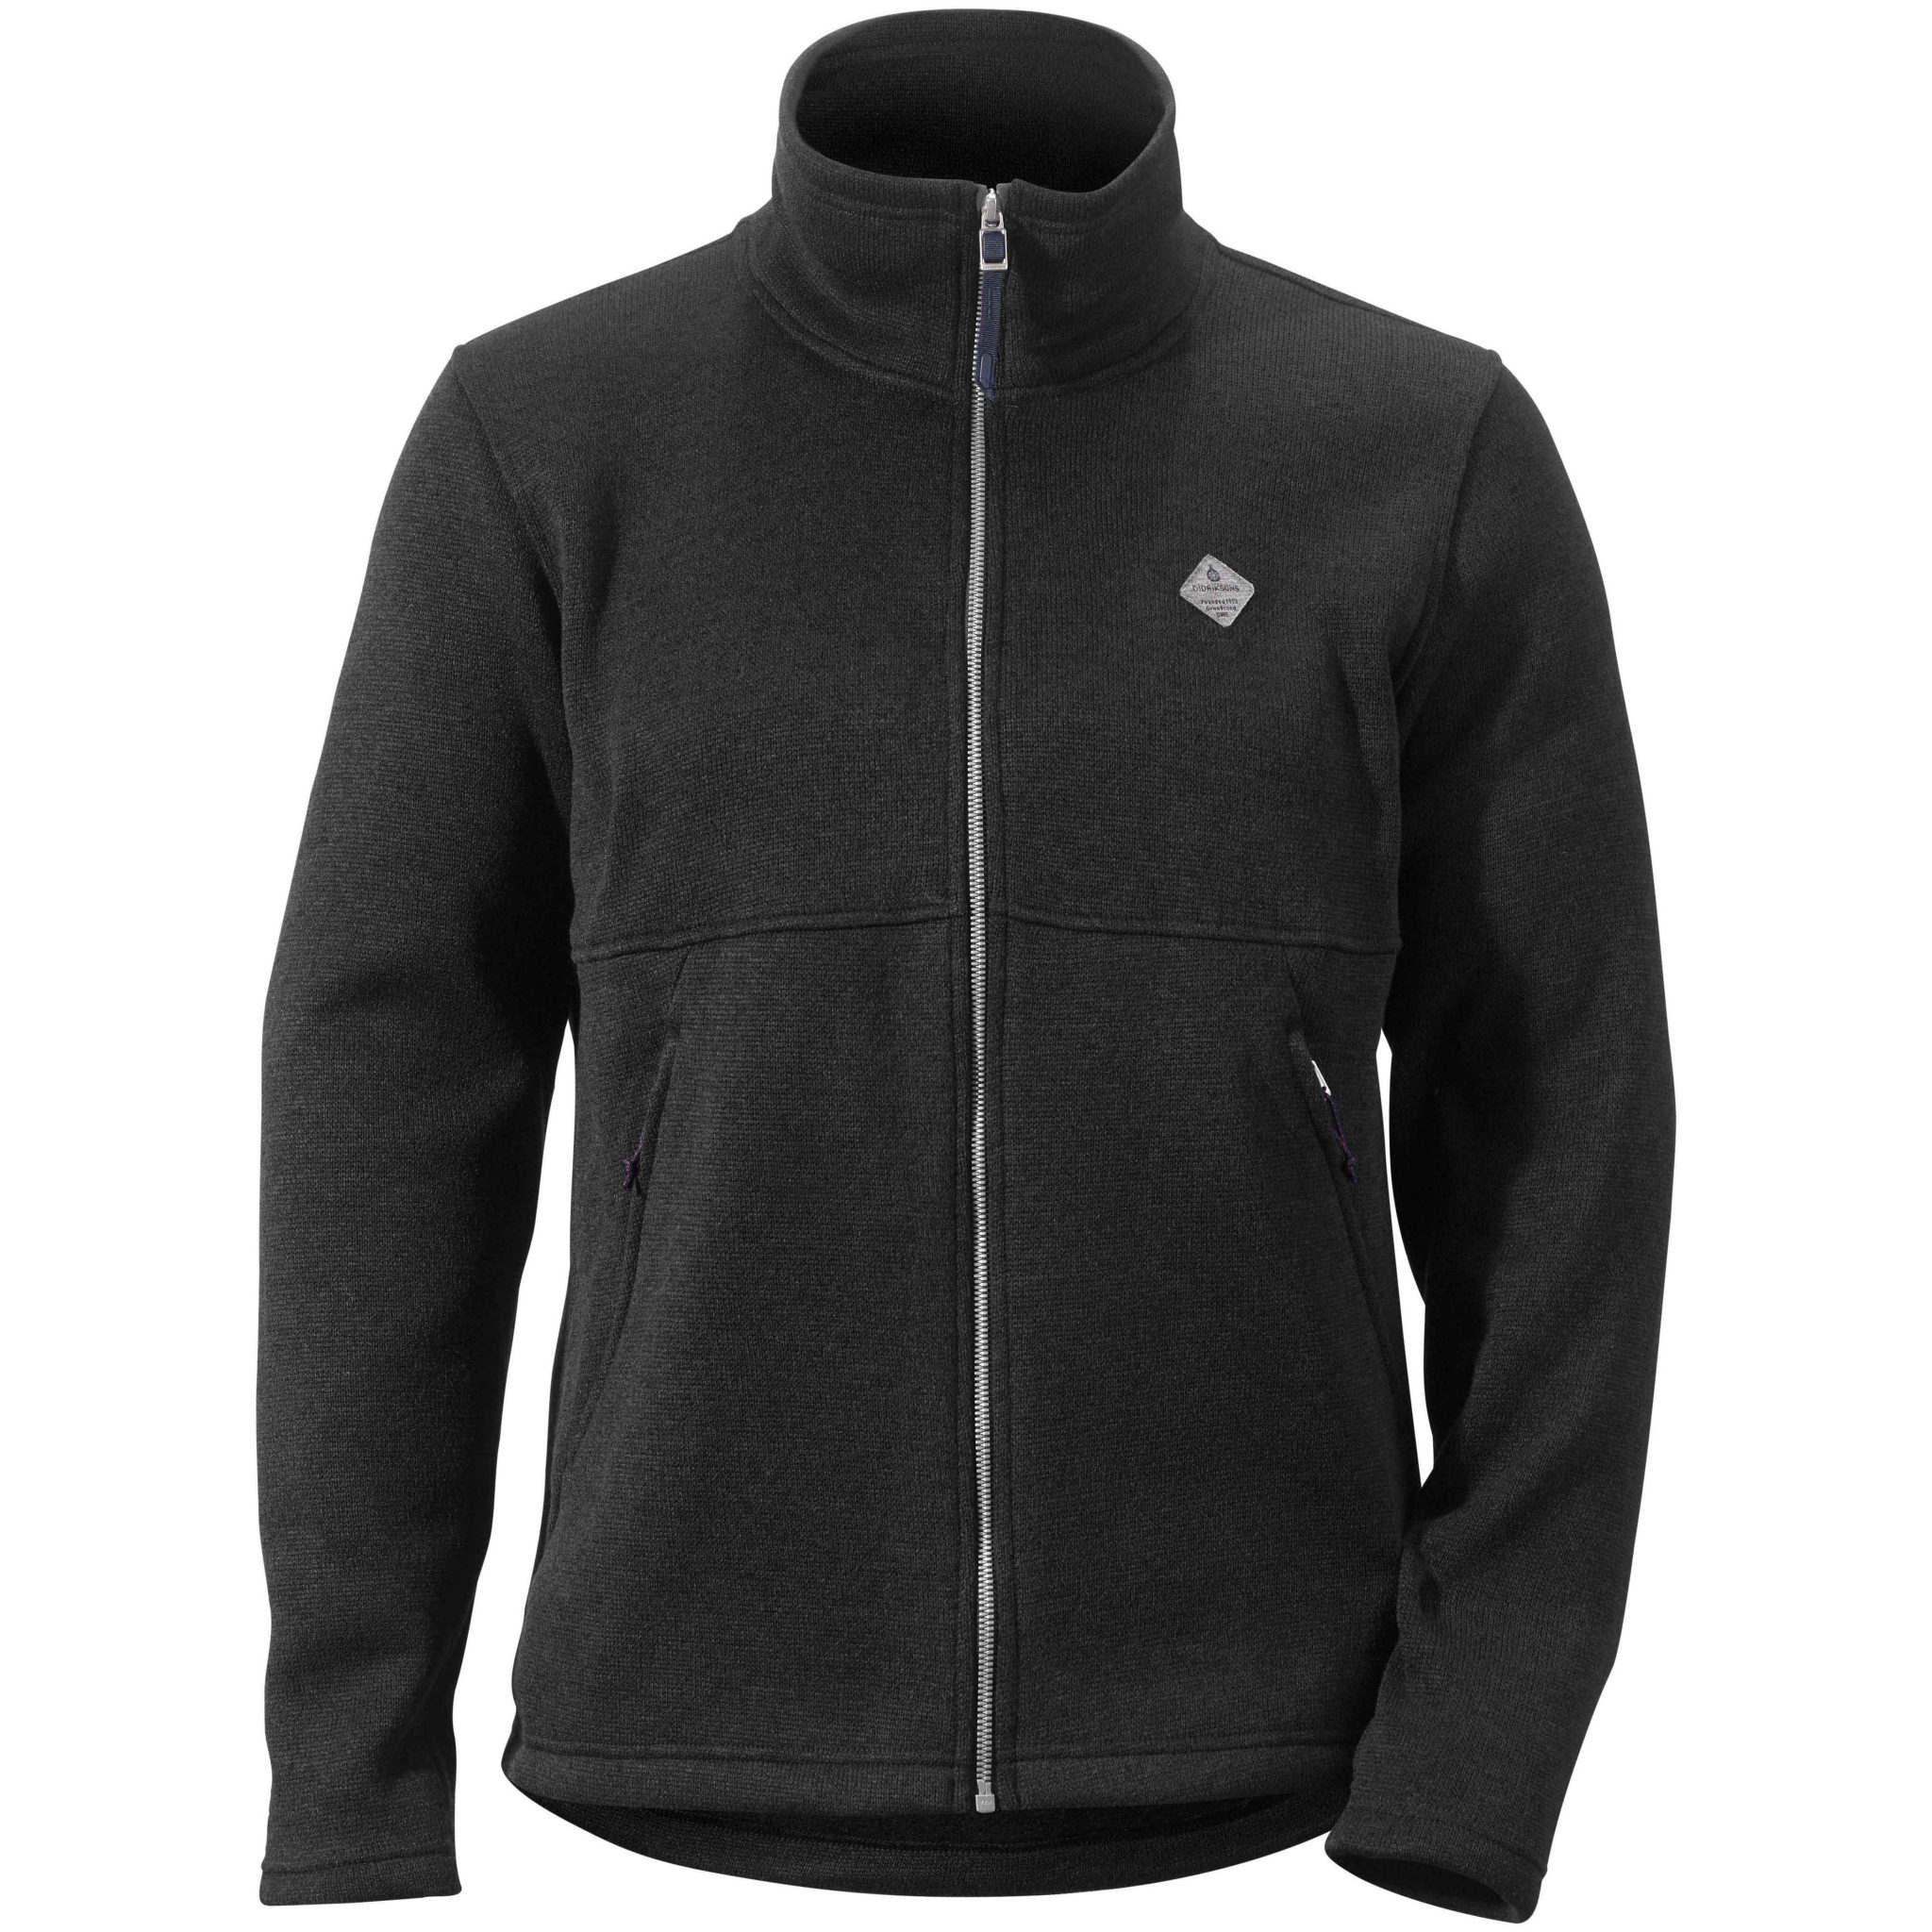 Didrikson Crave Jacket - Black